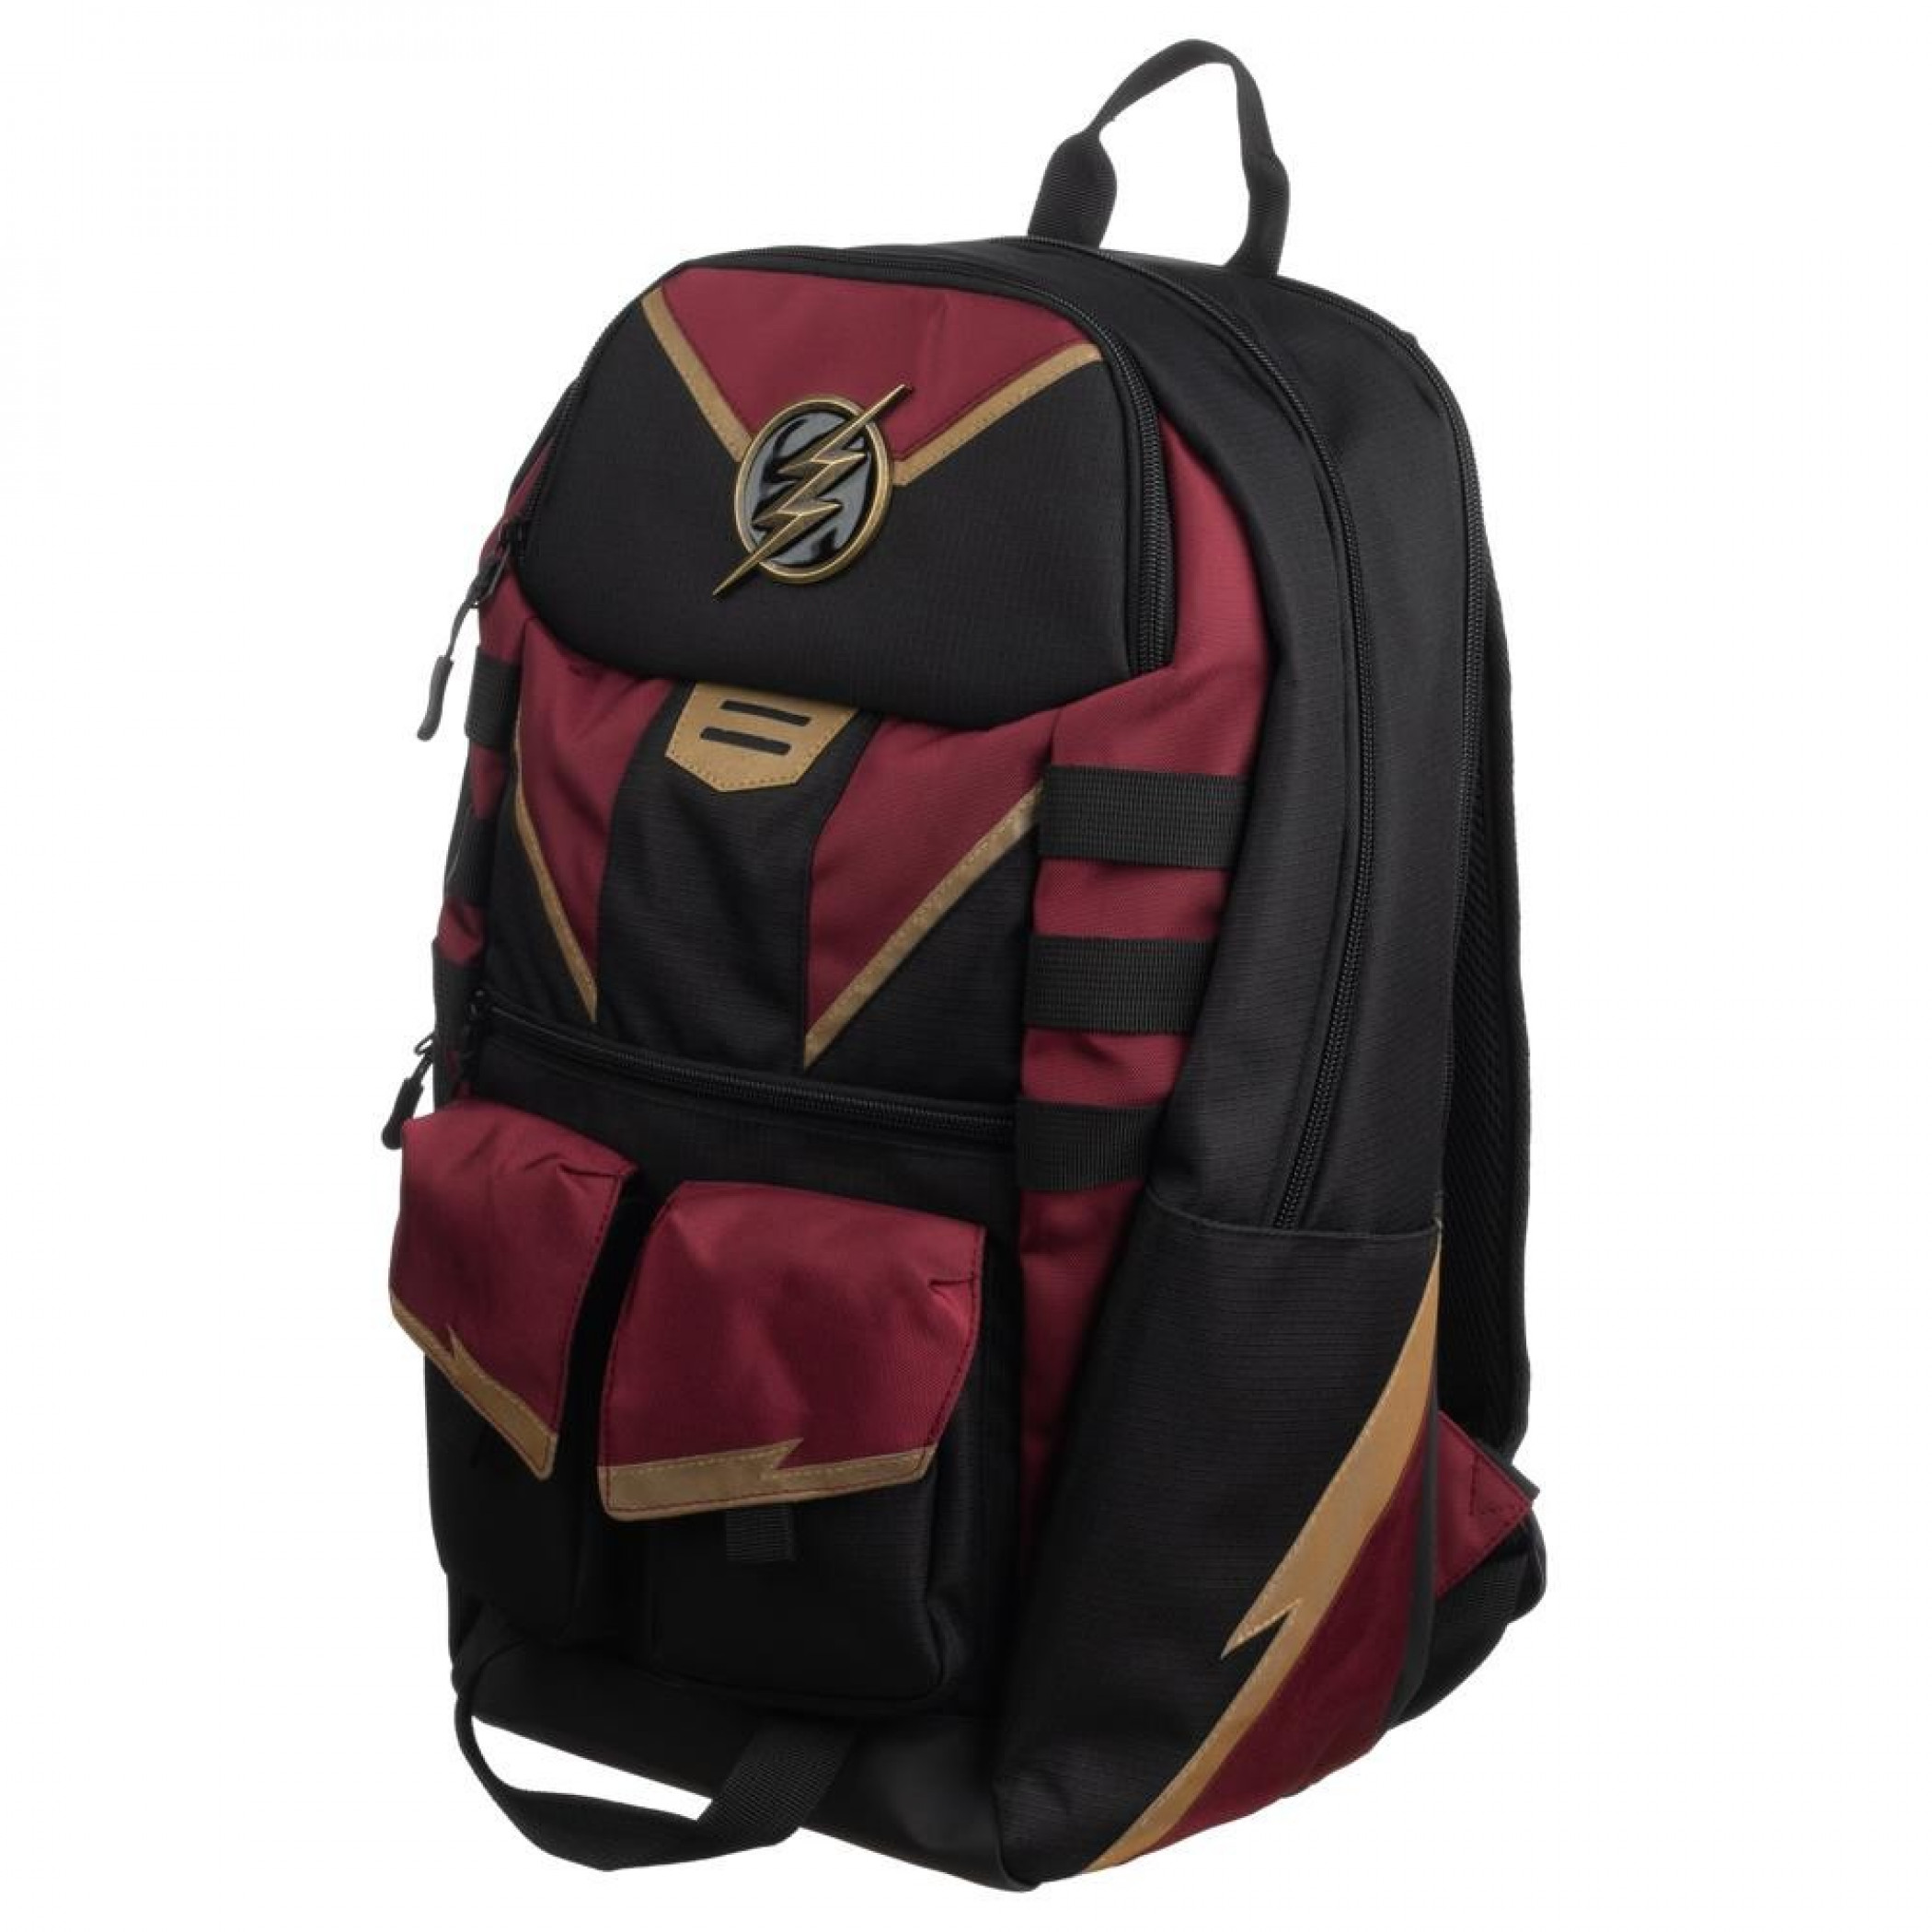 The Flash Black and Maroon Backpack